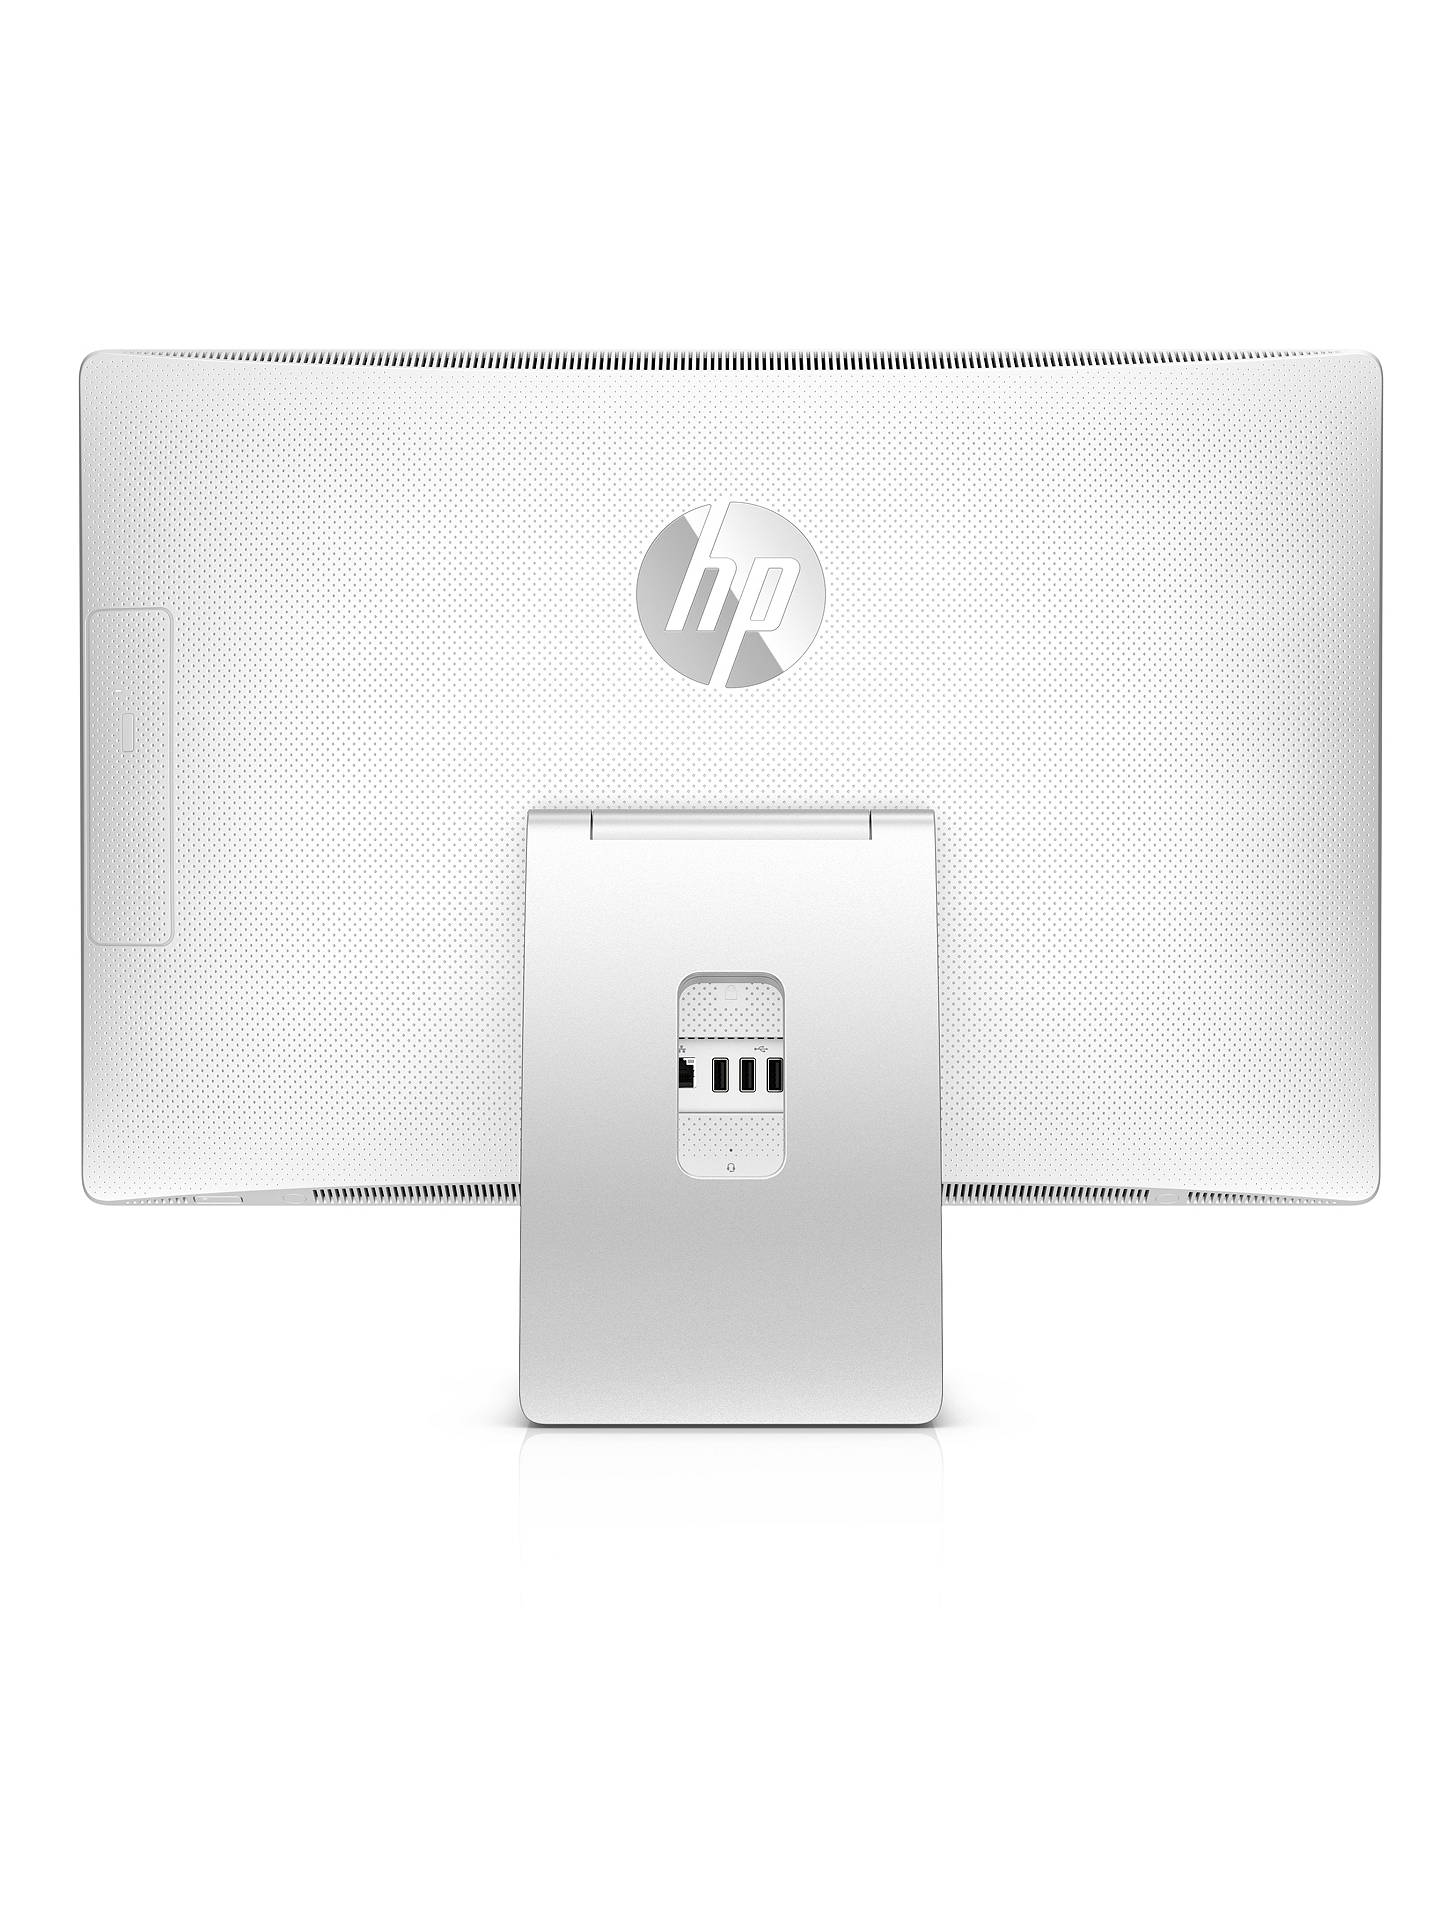 HP Pavilion 23-q170na All-in-One Desktop PC, Intel Core i7